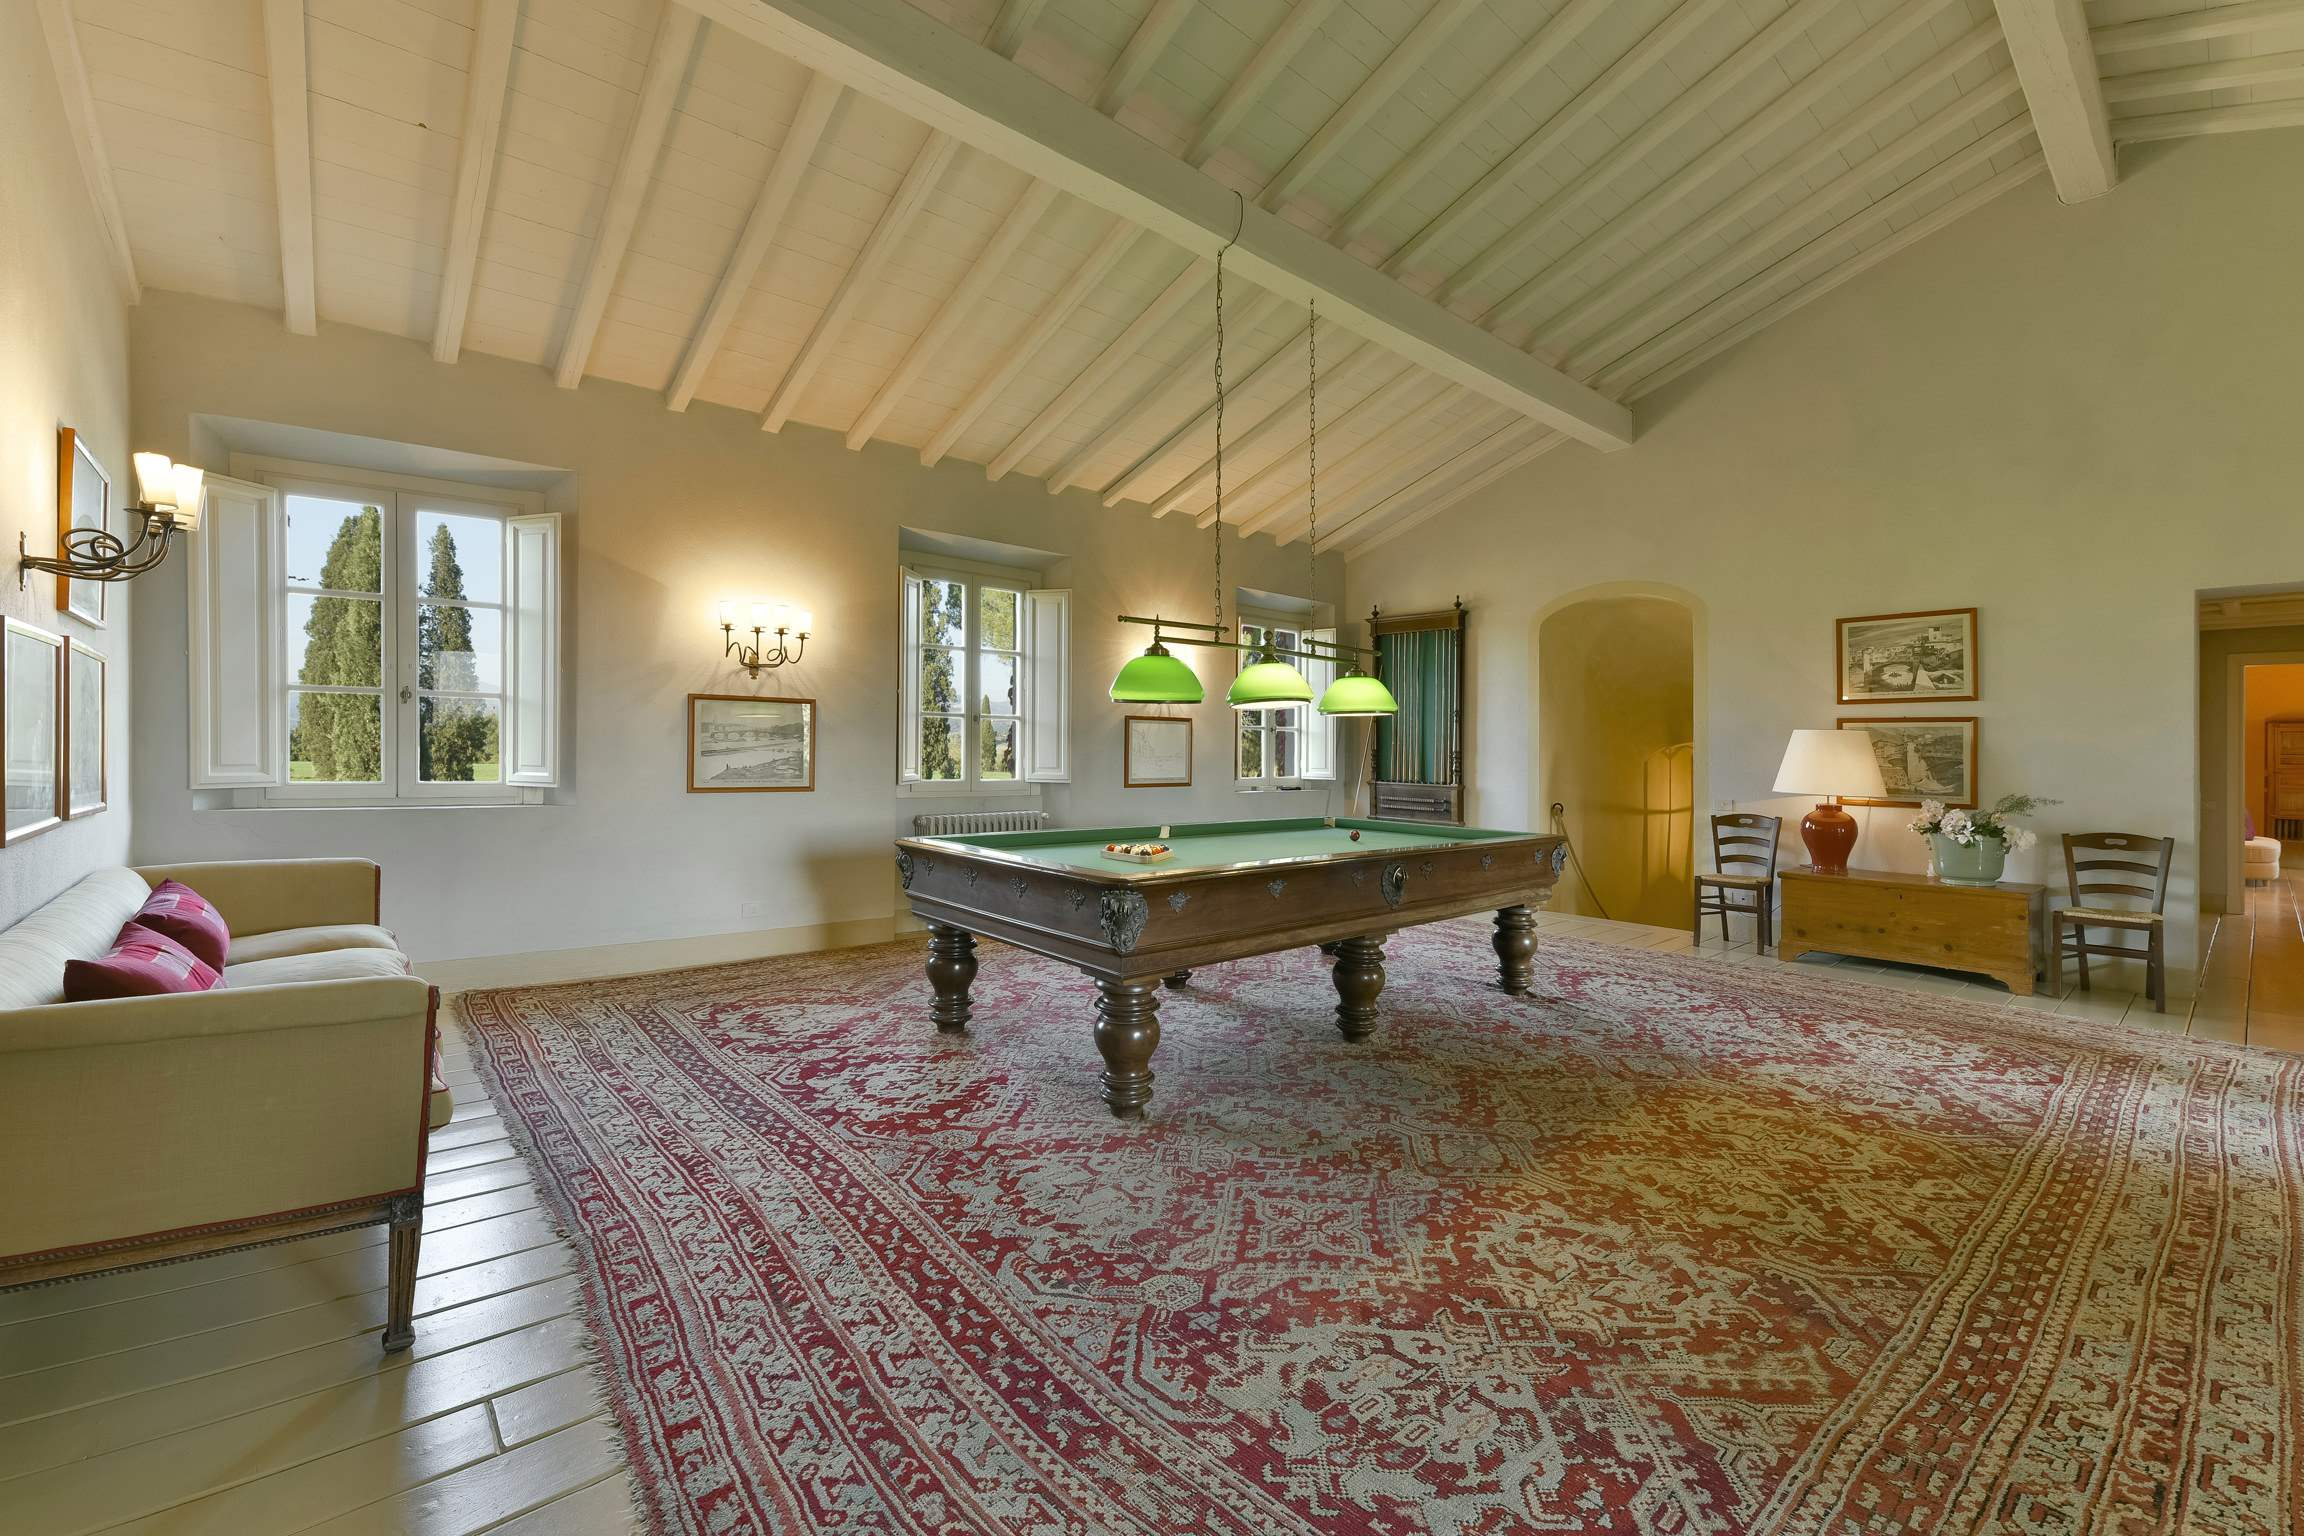 Villa Maremma 1, 7 bedroom villa in South Tuscany - Maremma, Tuscany Photo #21